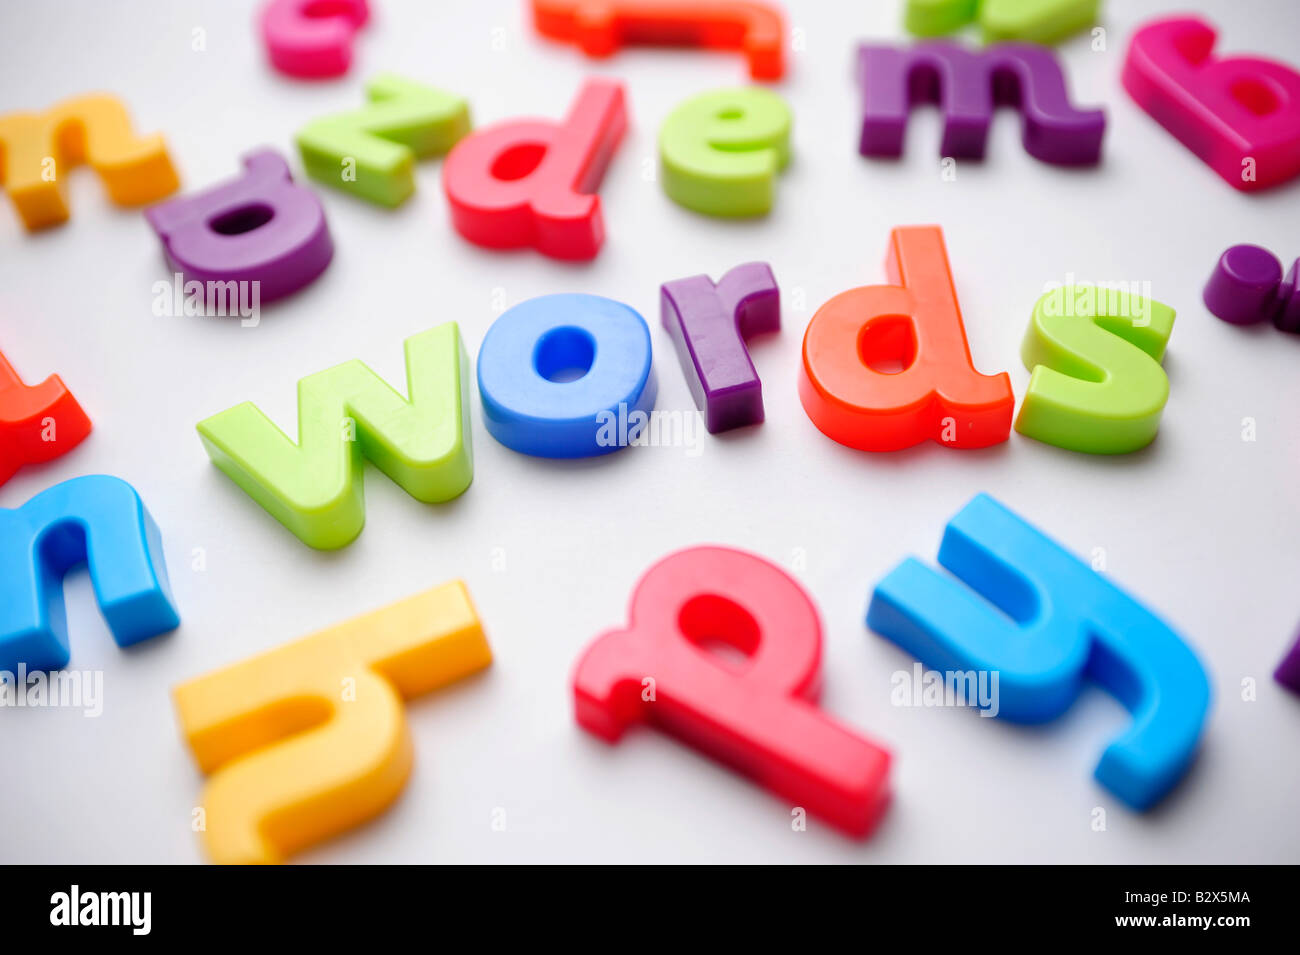 Coloured plastic letters spelling out words to illustrate learning